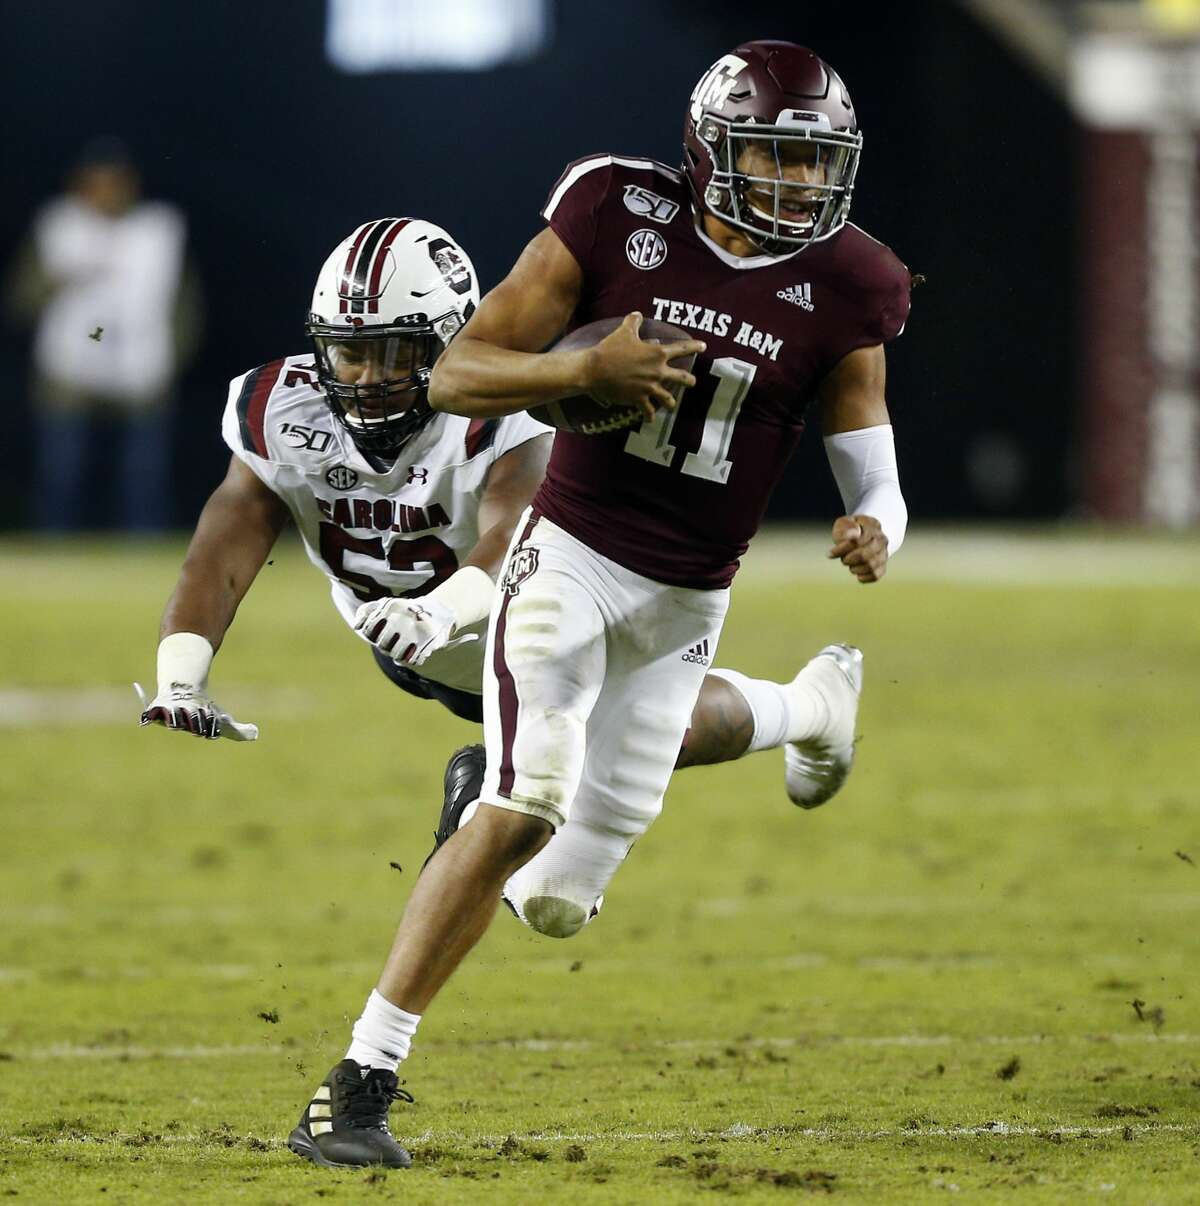 COLLEGE STATION, TEXAS - NOVEMBER 16: Kellen Mond #11 of the Texas A&M Aggies runs with the ball as Kingsley Enagbare #52 of the South Carolina Gamecocks attempts to make a tackle at Kyle Field on November 16, 2019 in College Station, Texas. (Photo by Bob Levey/Getty Images)